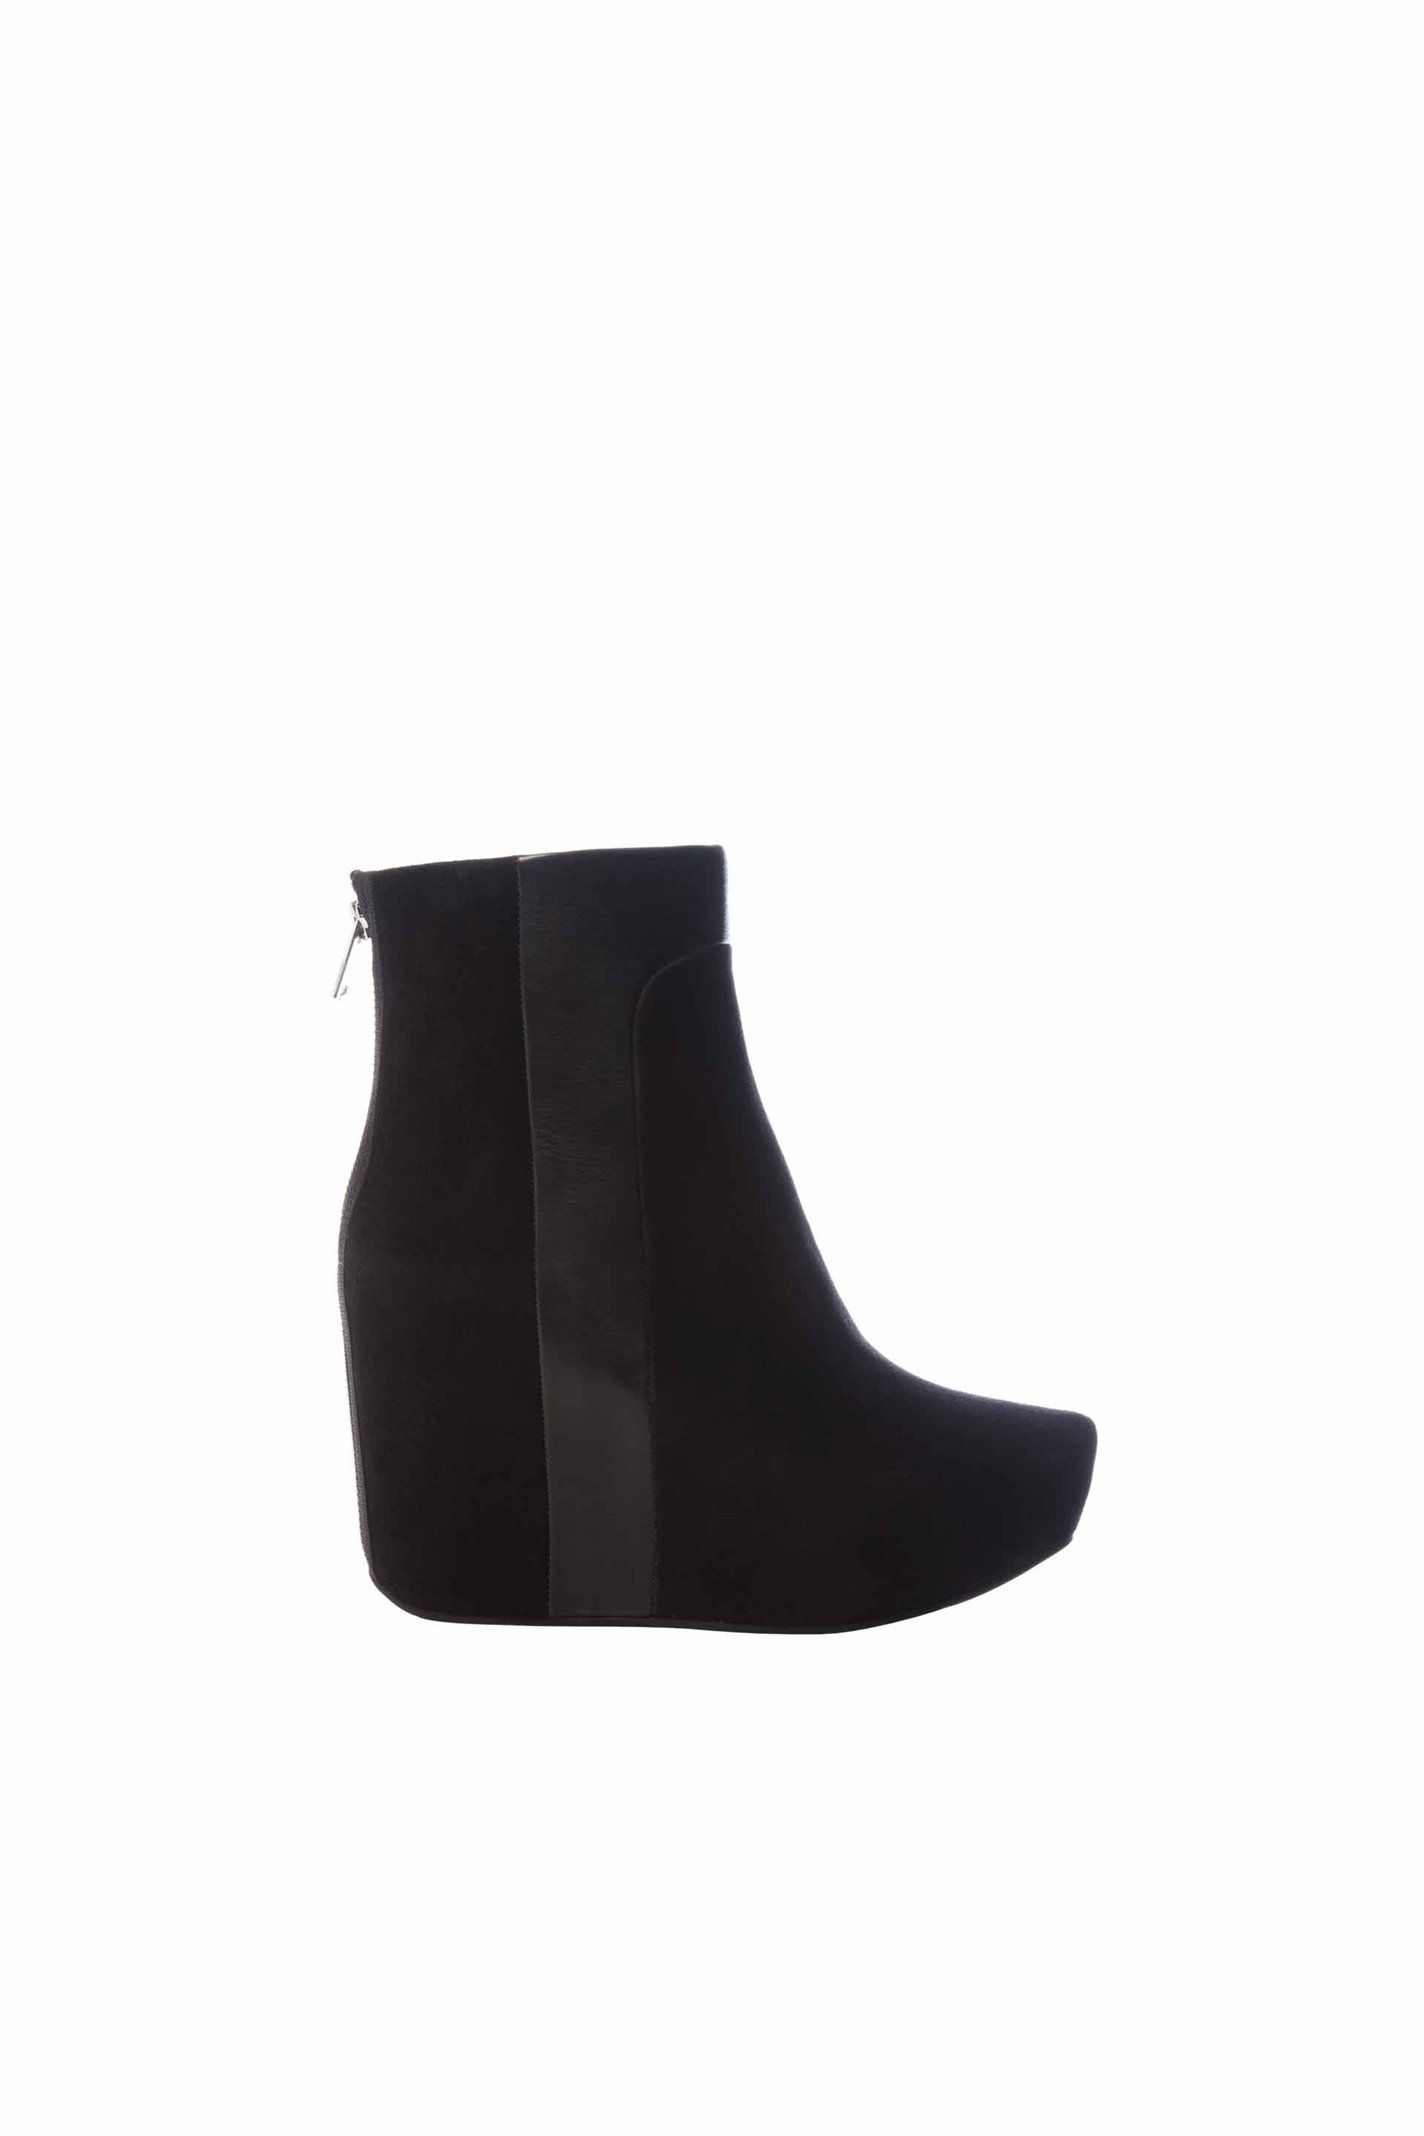 65mm Boots Boot Simplicity Wedge By Marc Femmes Jacobs n6gXR88